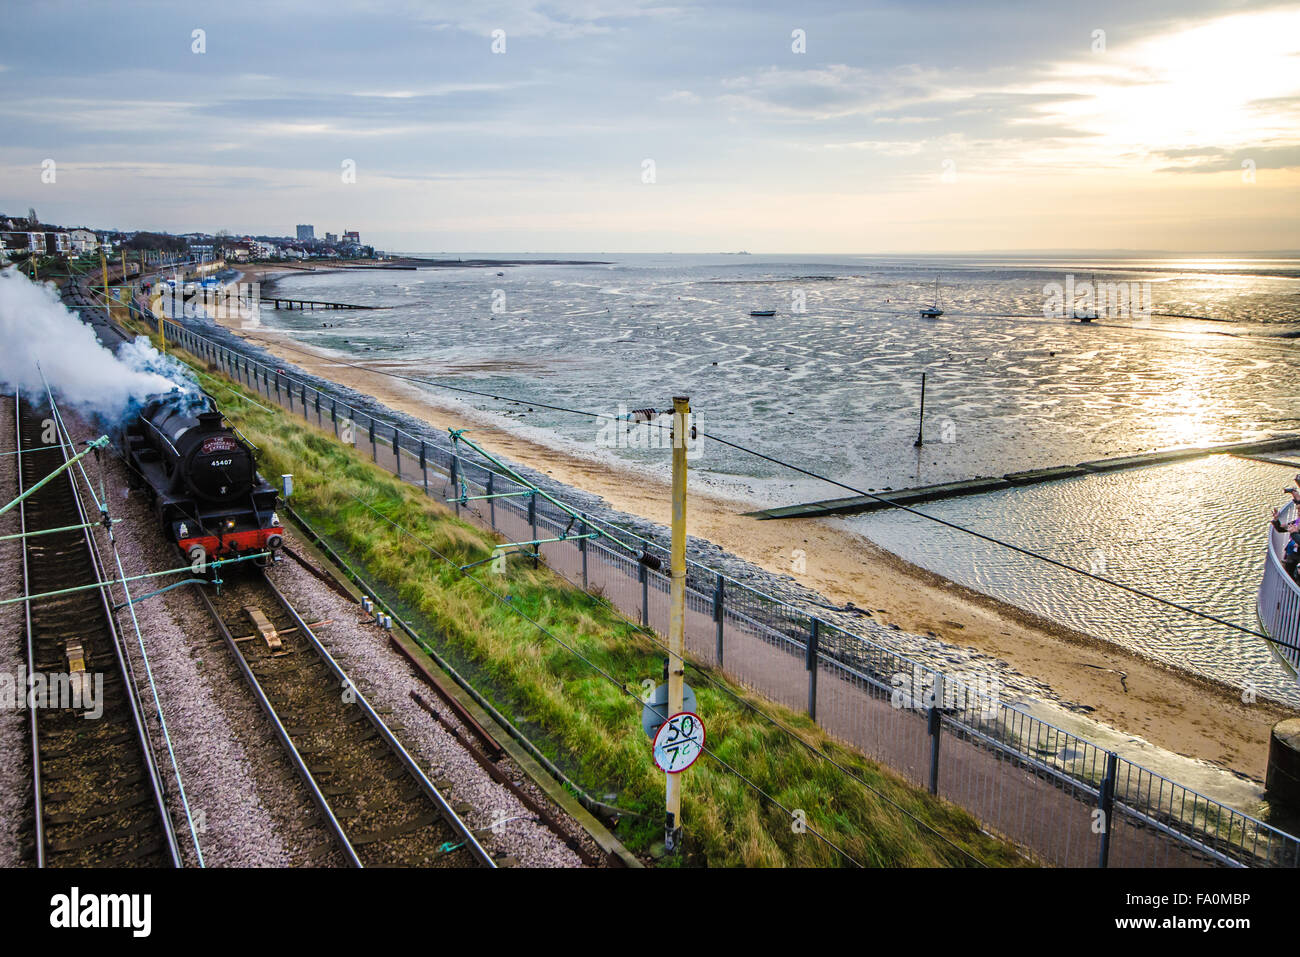 a-steam-train-ran-on-the-uks-mainlines-from-southend-on-sea-essex-FA0MBP.jpg